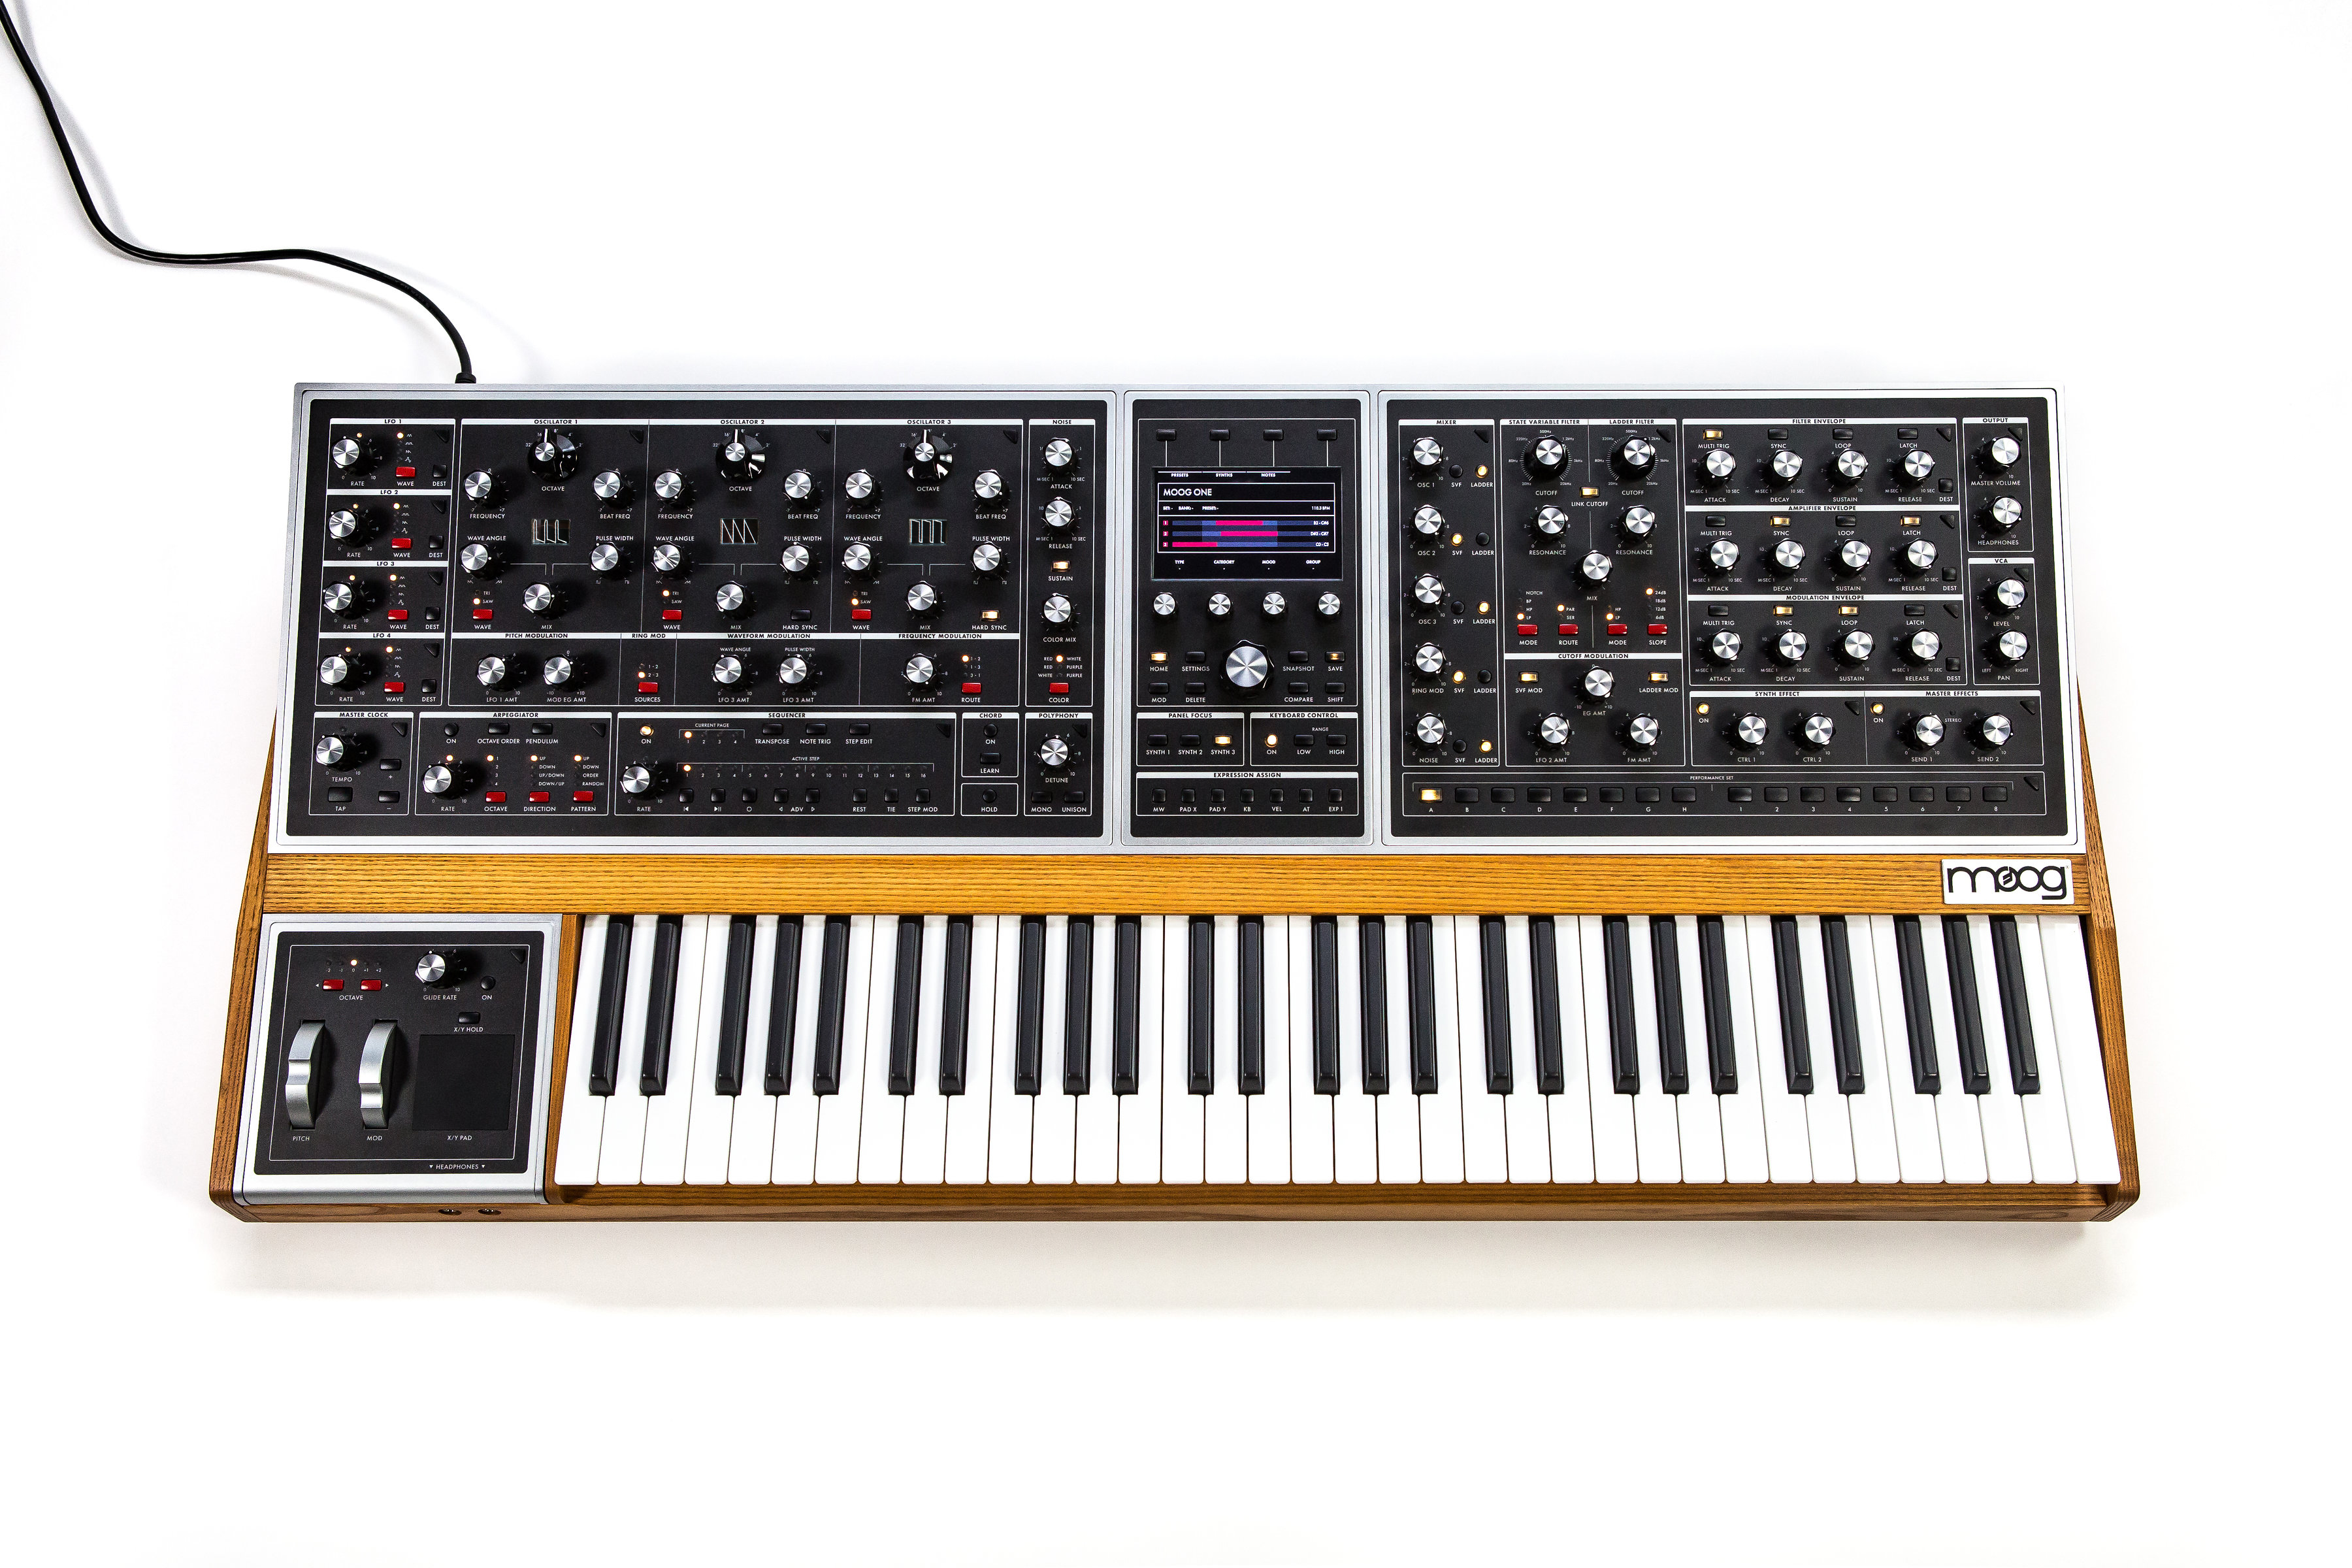 Moog reveal their first polysynth in decades - inside the Moog One